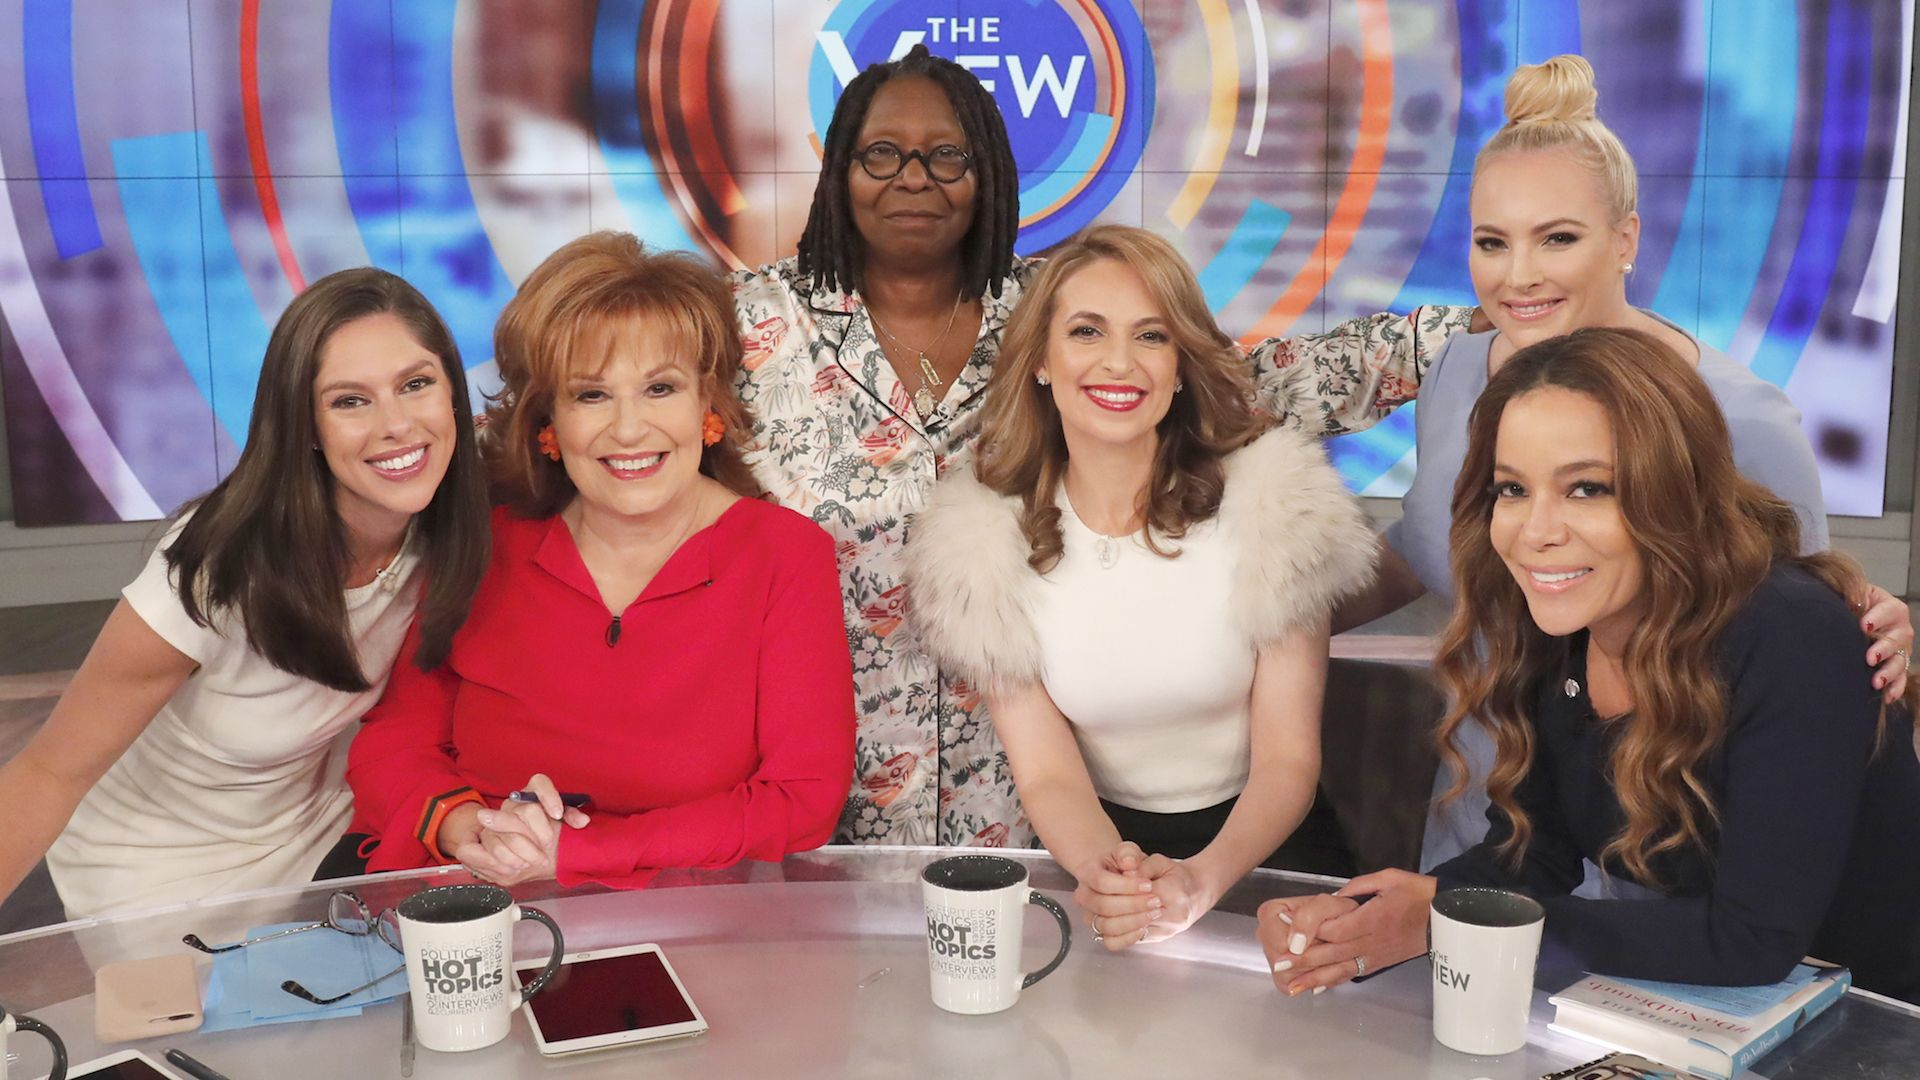 'The View' Fans Are Fired Up After Meghan McCain and Ana Navarro-Cárdenas's Trump Comments